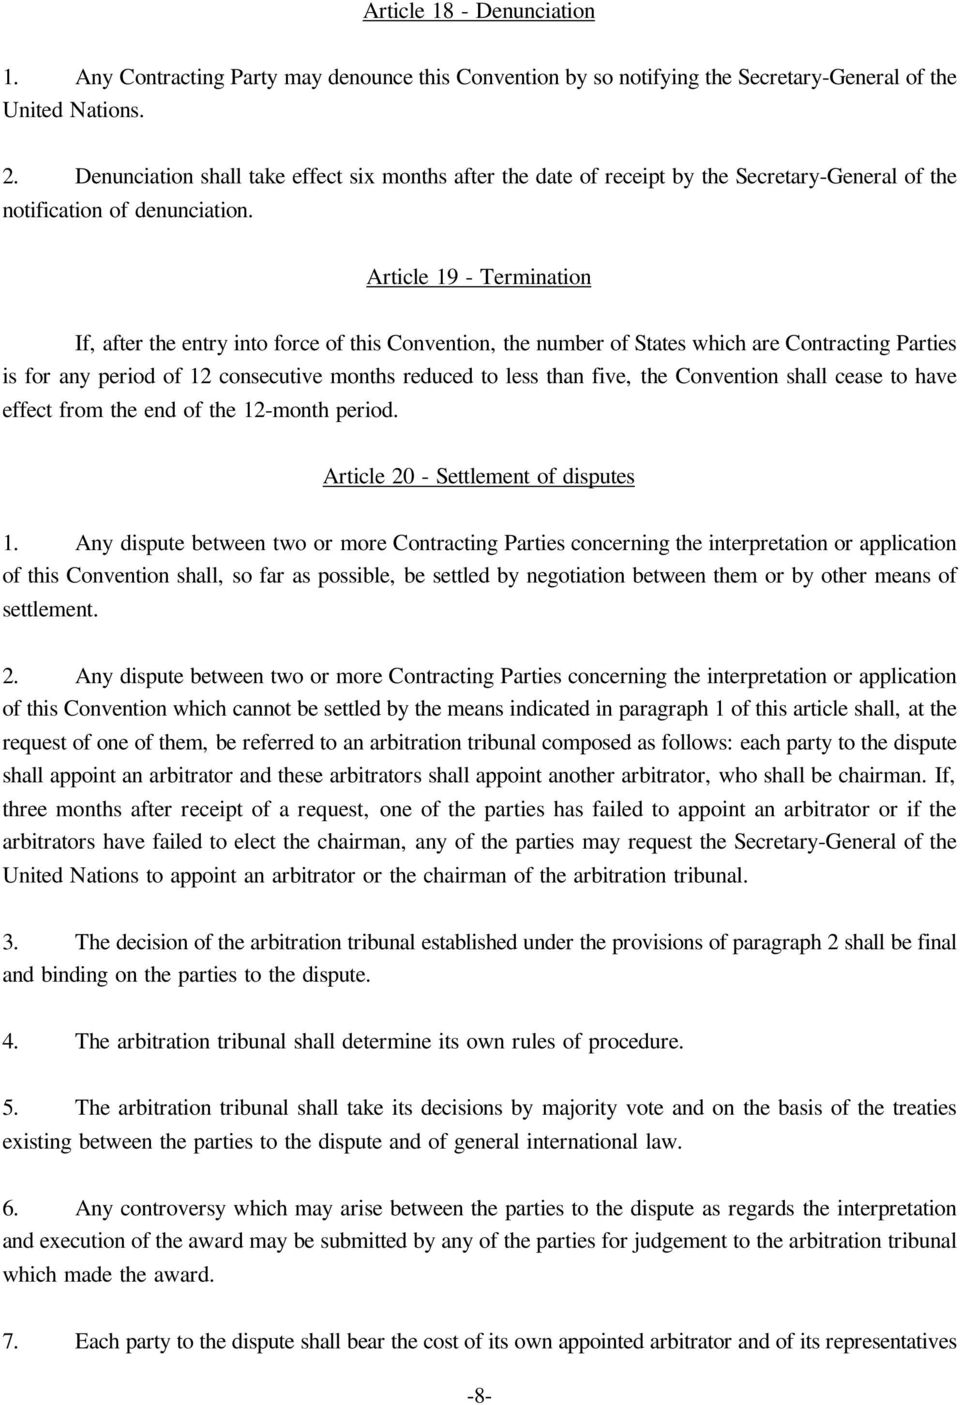 Article 19 - Termination If, after the entry into force of this Convention, the number of States which are Contracting Parties is for any period of 12 consecutive months reduced to less than five,